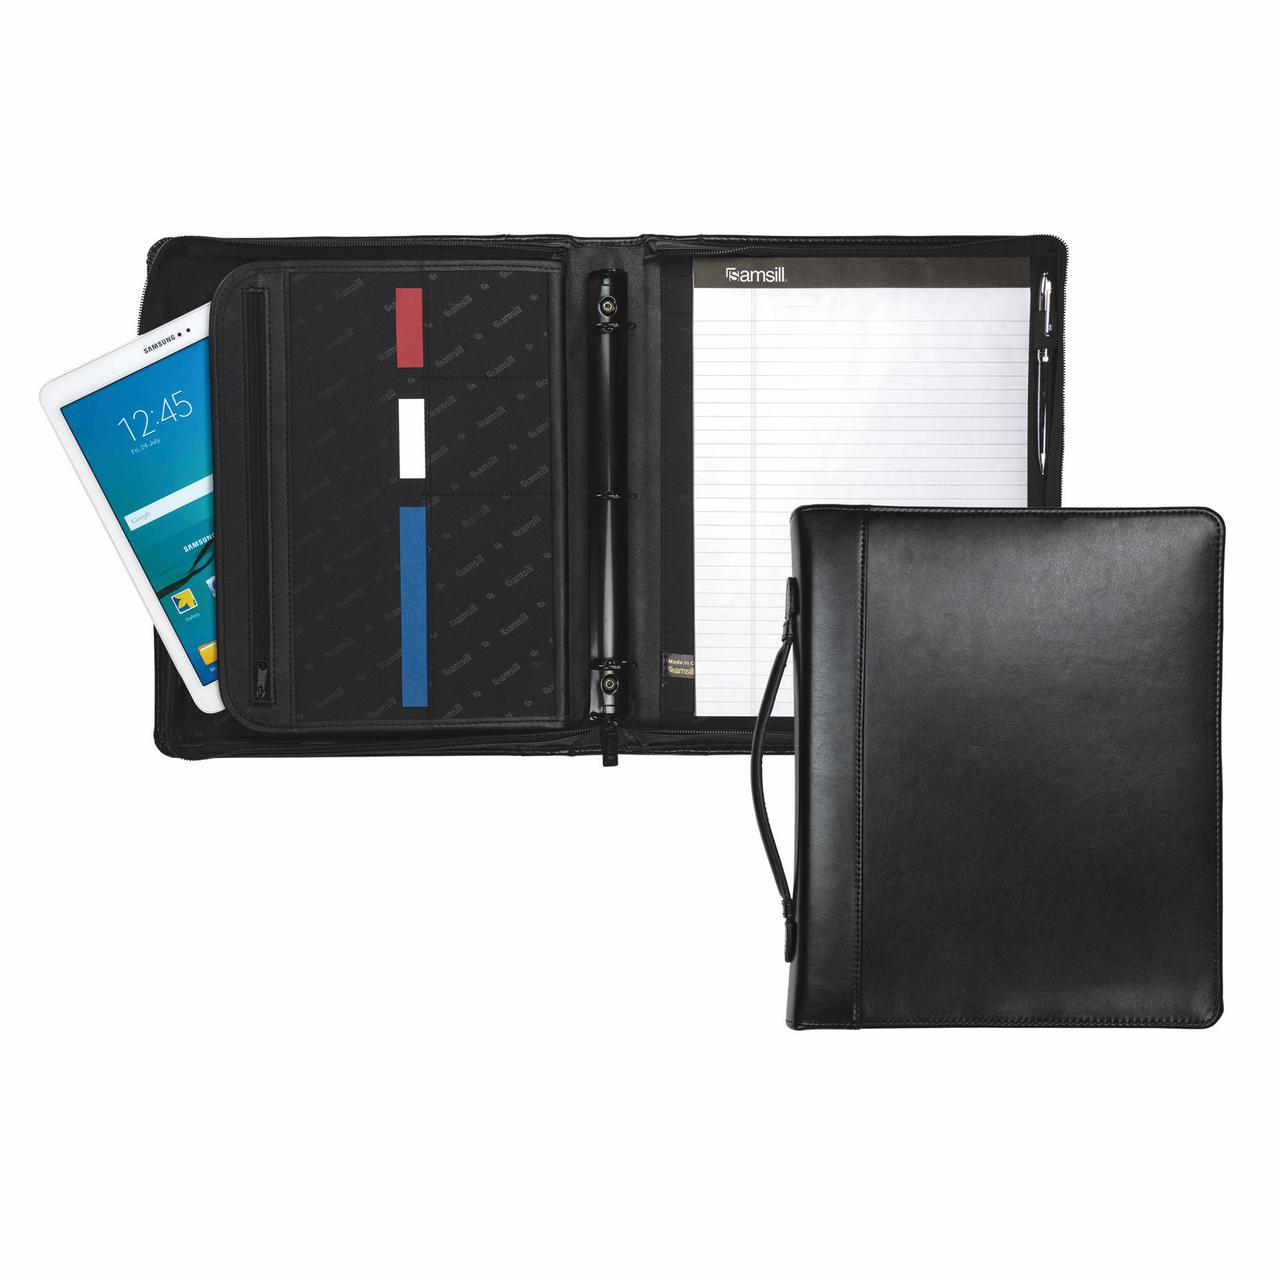 "Samsill Regal Leather 1.5"" Round Ring Zipper Binder Portfolio with Retractable Handle and Interior 10.1"" Tablet Sleeve, Black"